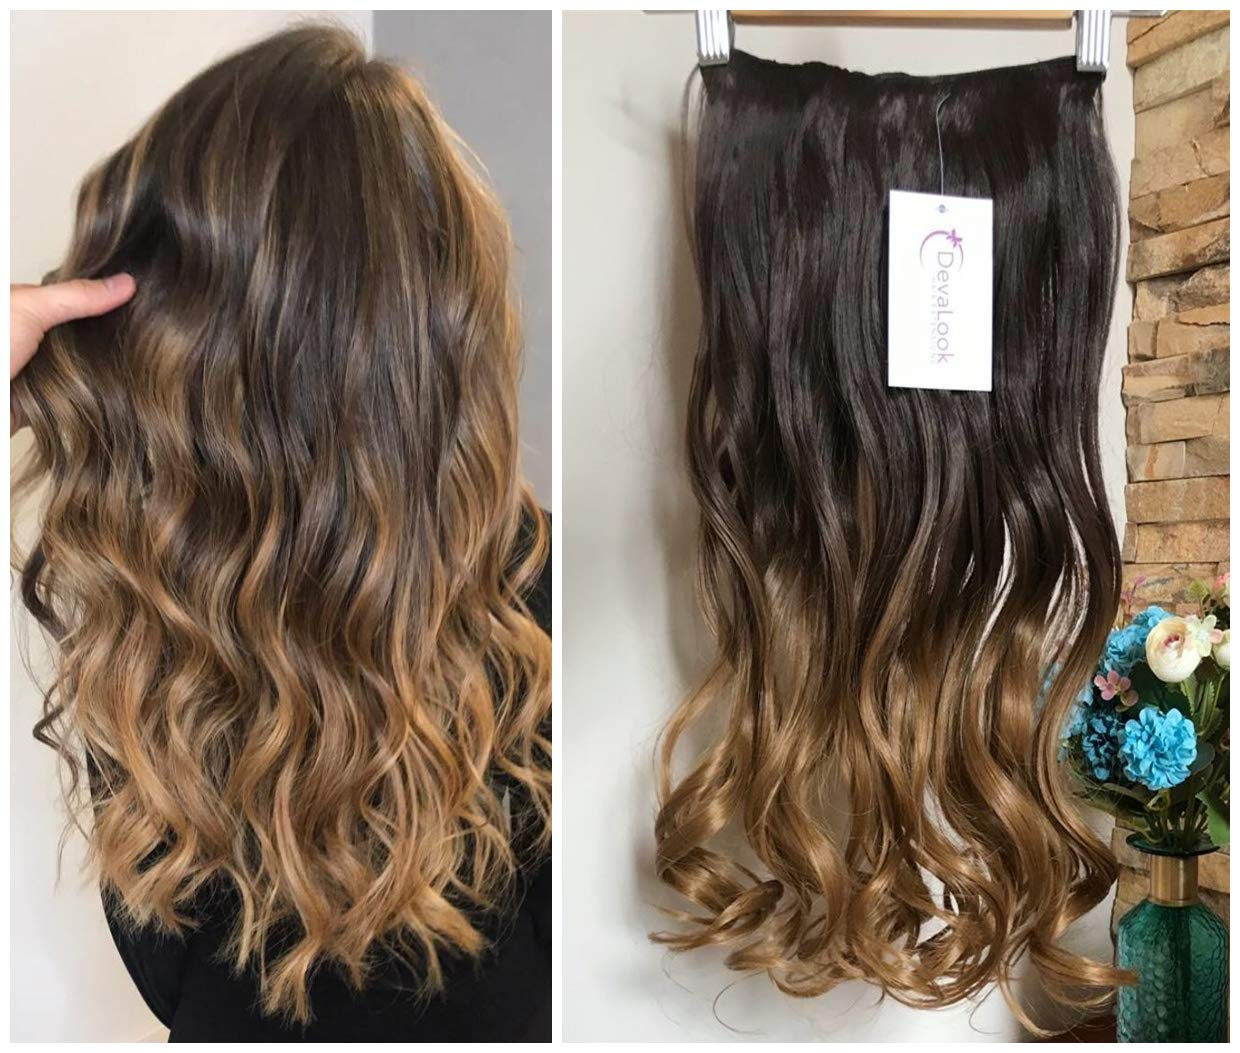 DevaLook 20'' Thick One Piece Straight Wavy Curly Half Head Ombre Clip in Hair Extensions (20''- Dark brown to dark blonde) ... by DevaLook Hair Extensions